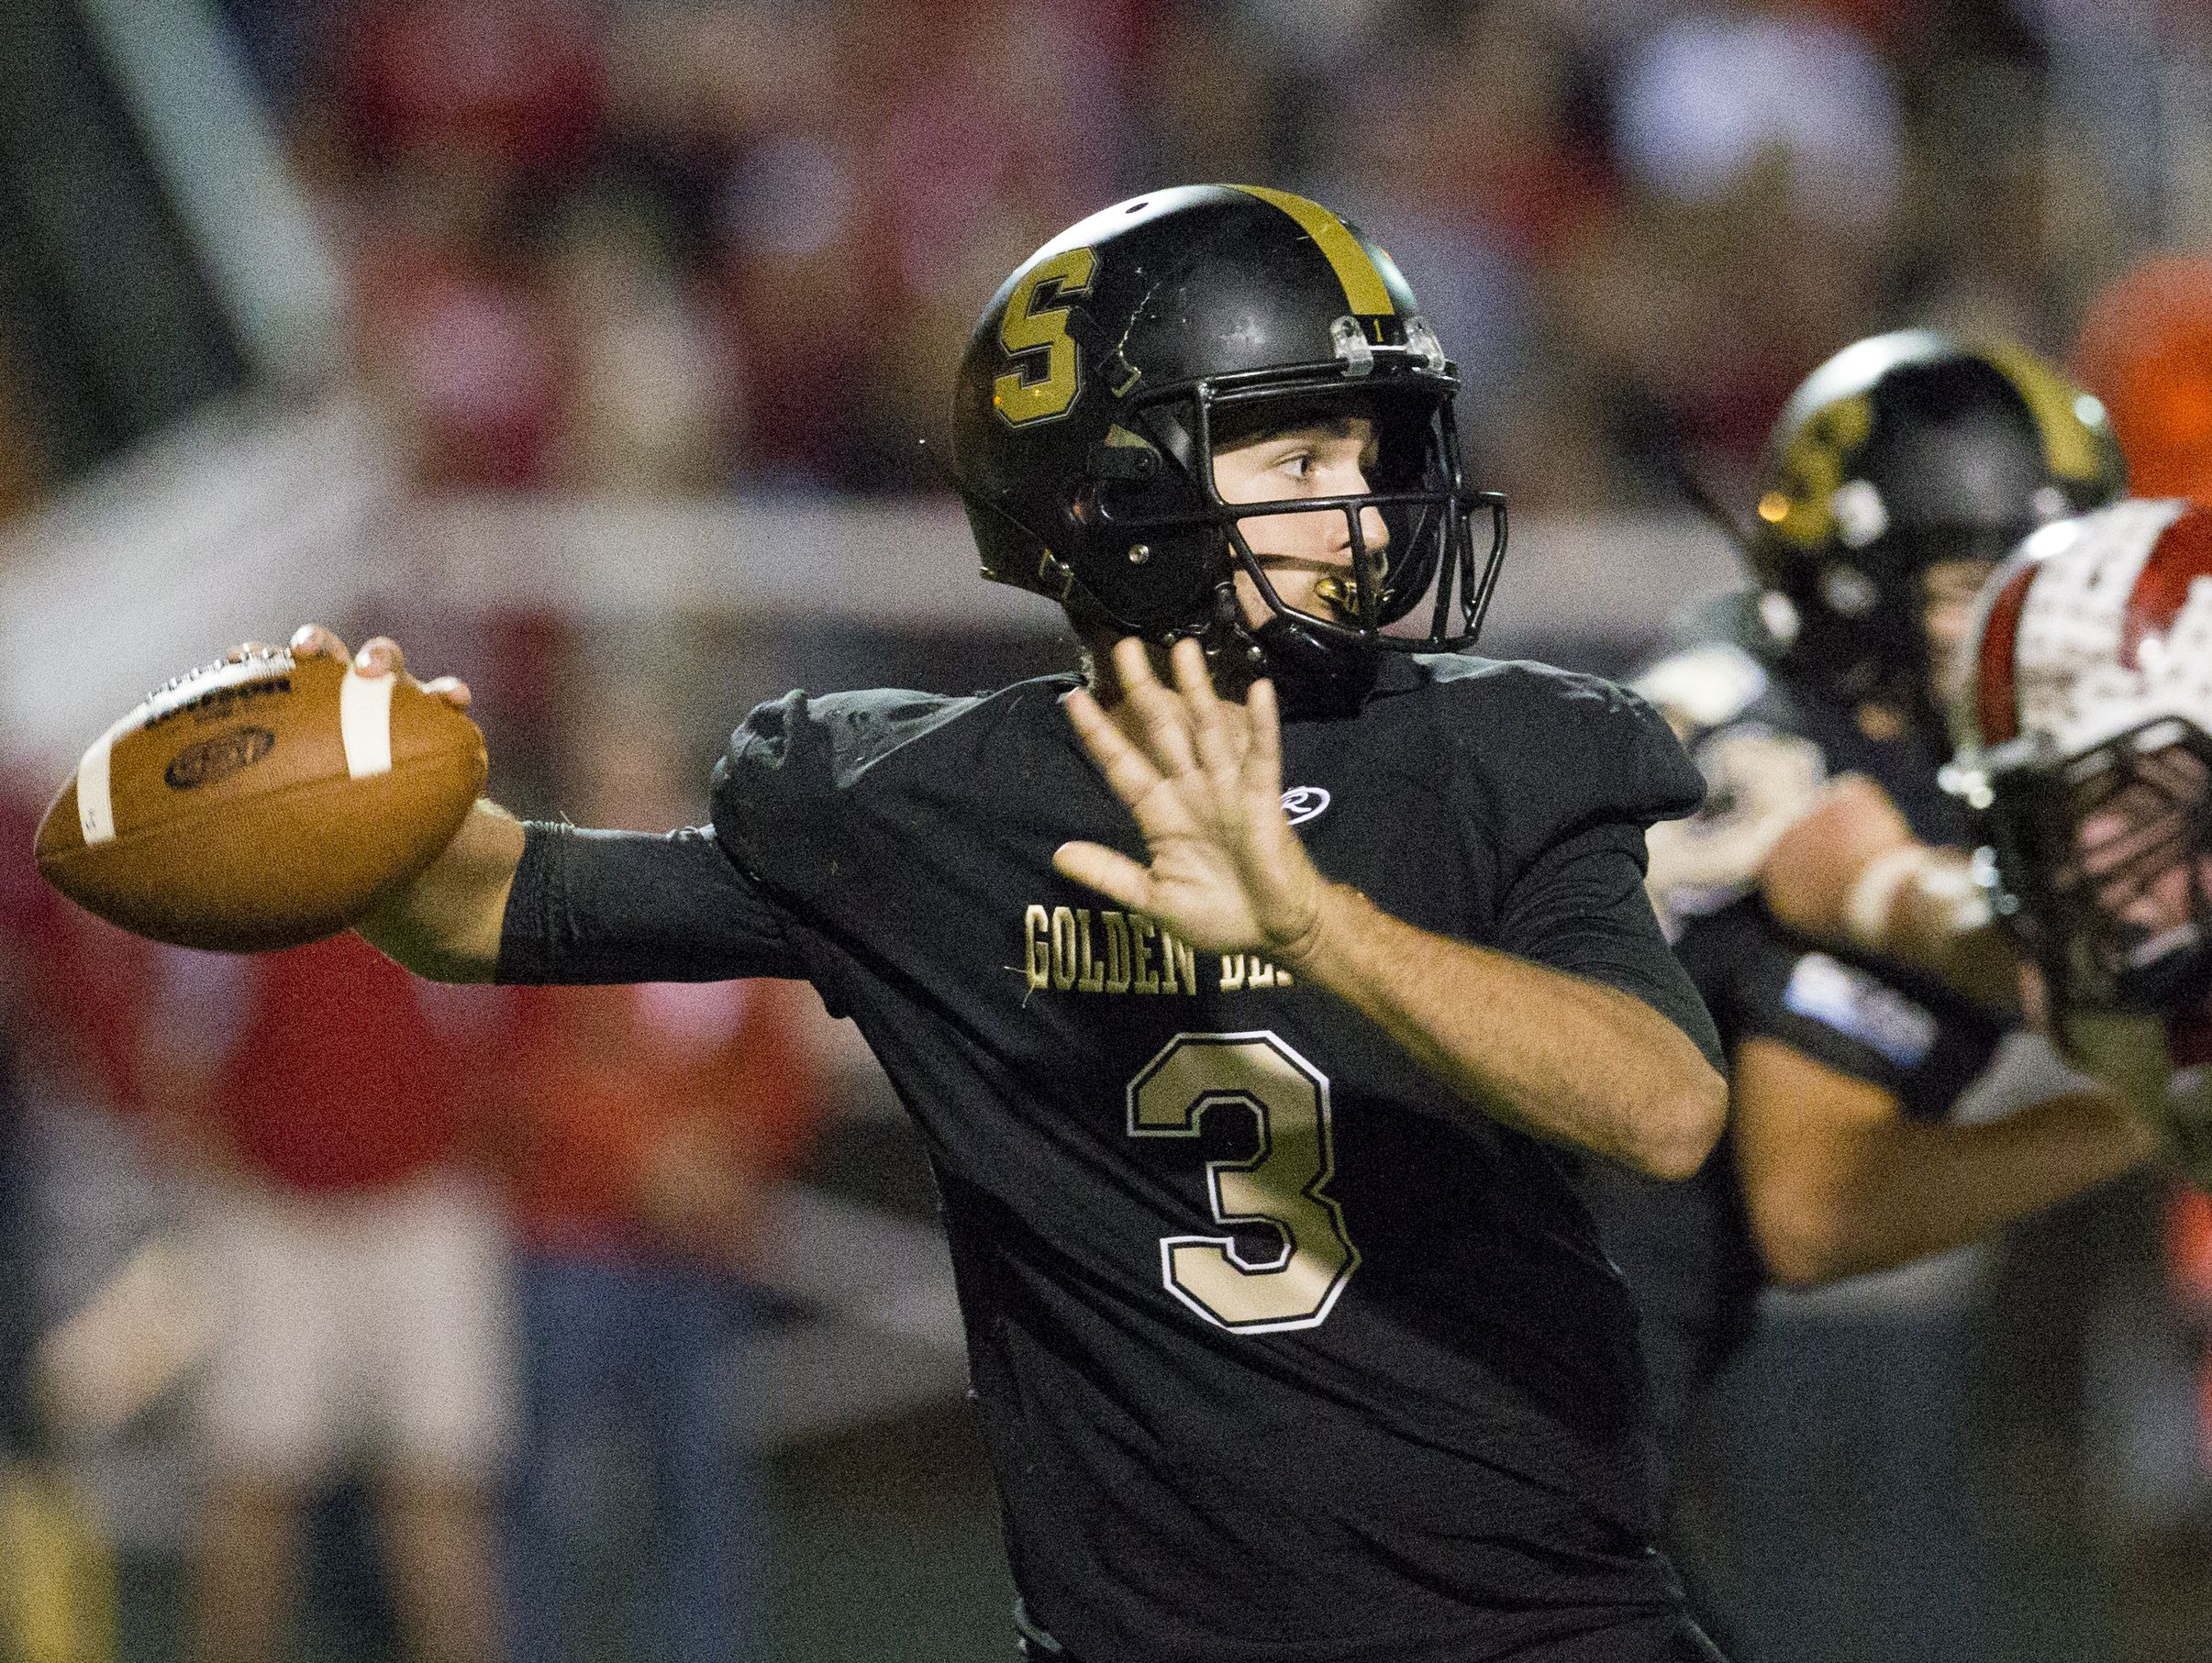 John Lux leads a high-powered Shelbyville offense against East Central on Friday.